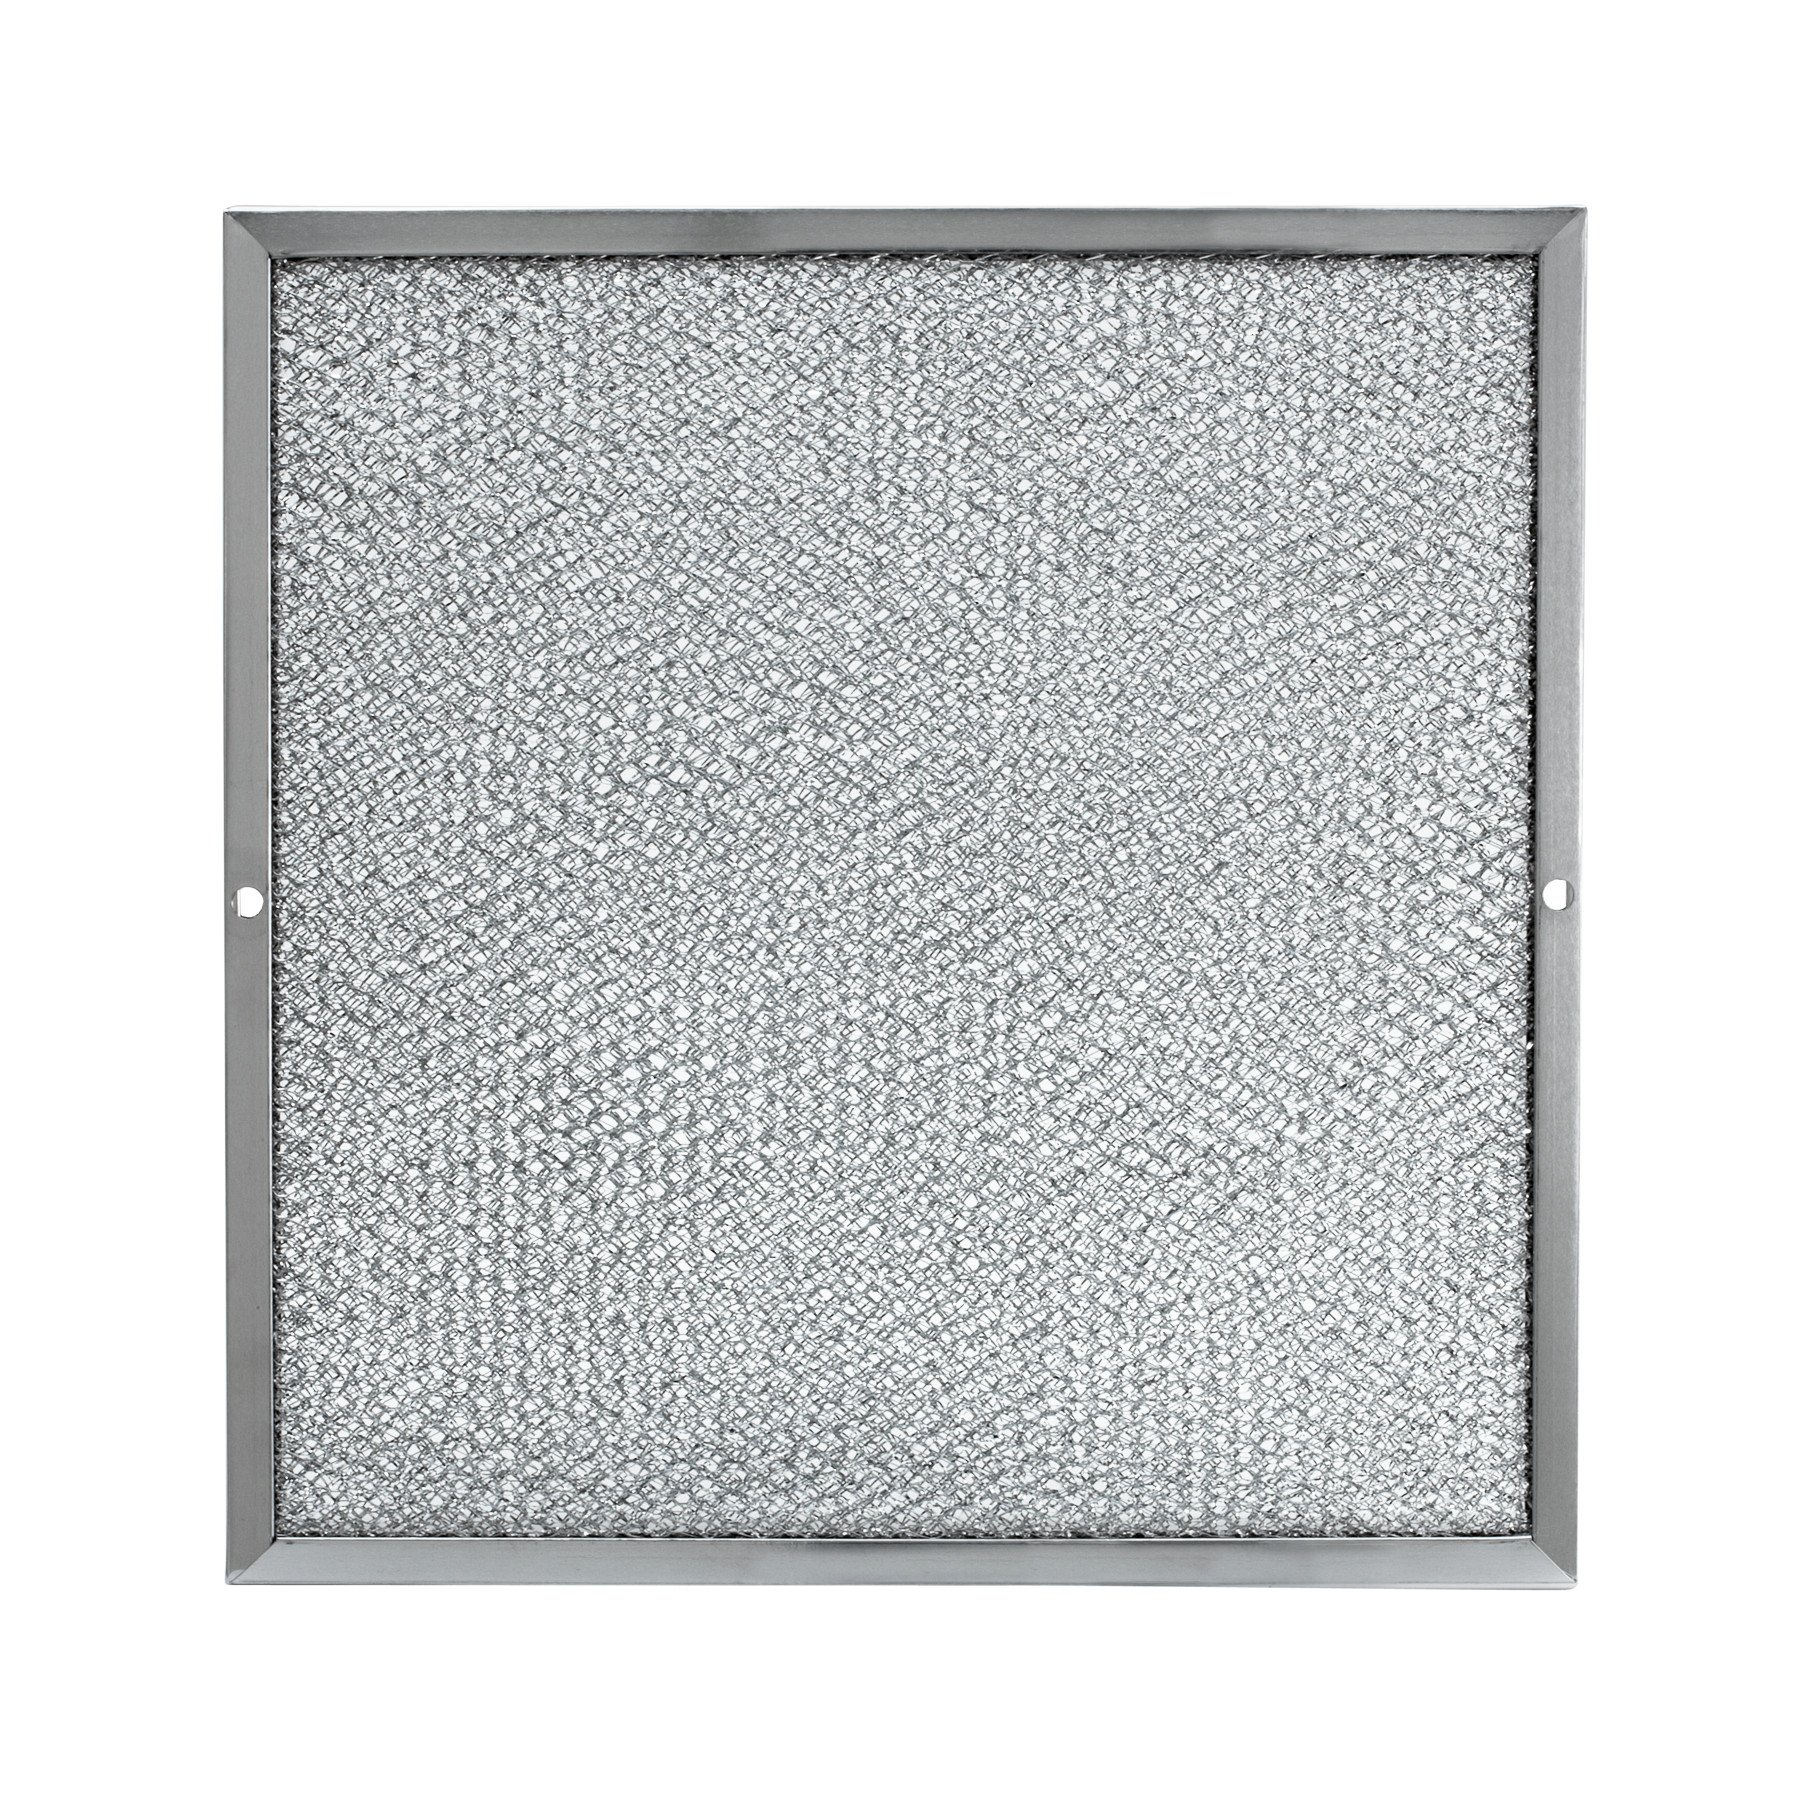 Grease Filter for use with metal grilles — Models L100/L150/L200/ L250 and L300 Series